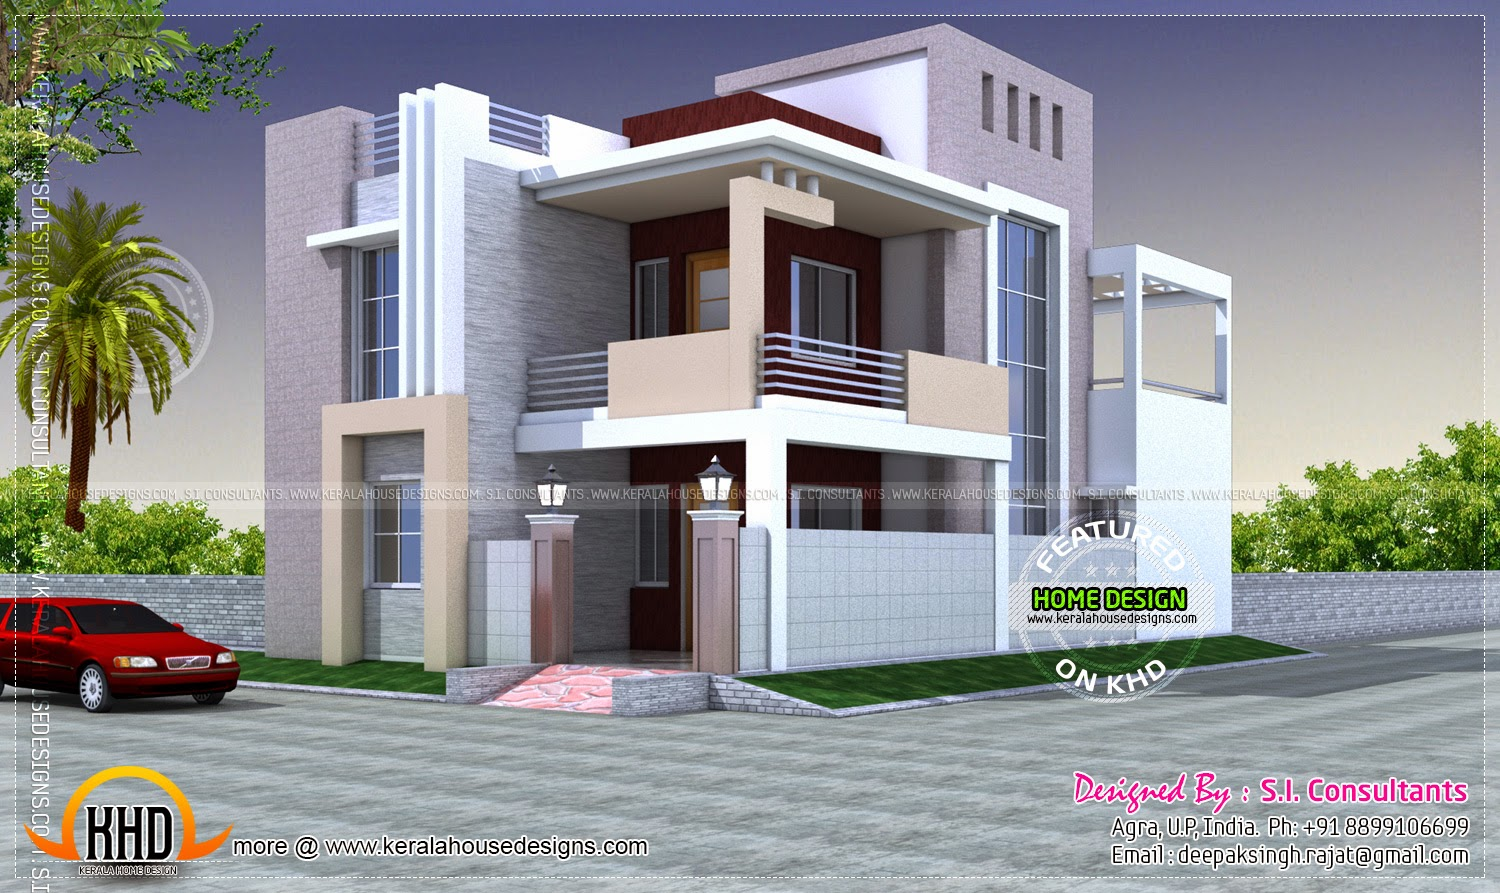 House exterior elevation modern style kerala home design for Indian home exterior design photos middle class